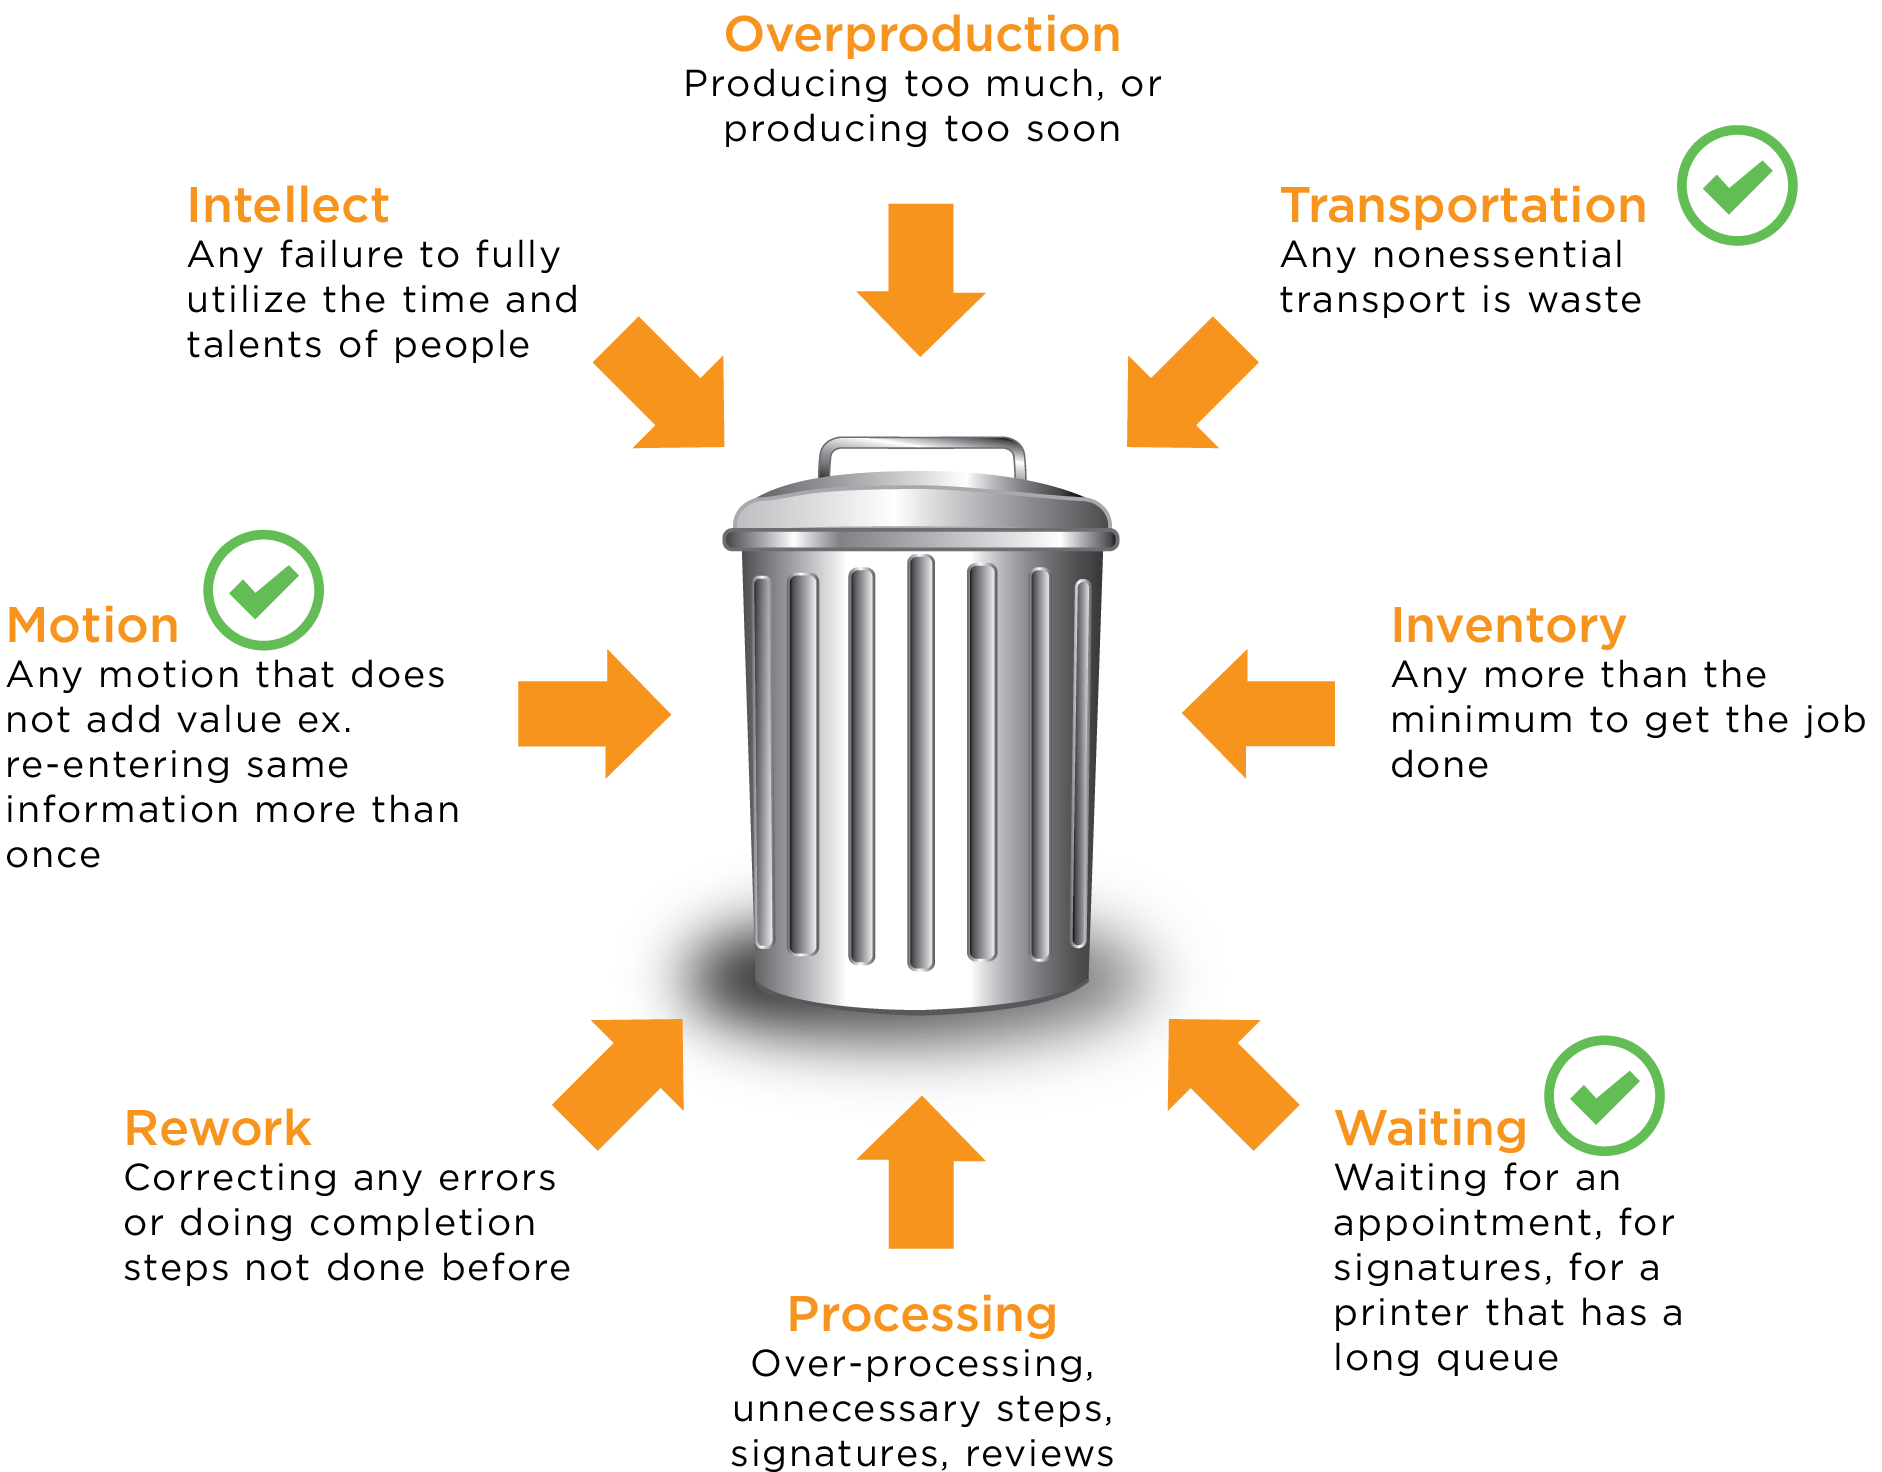 lean-processes-trash-can-web